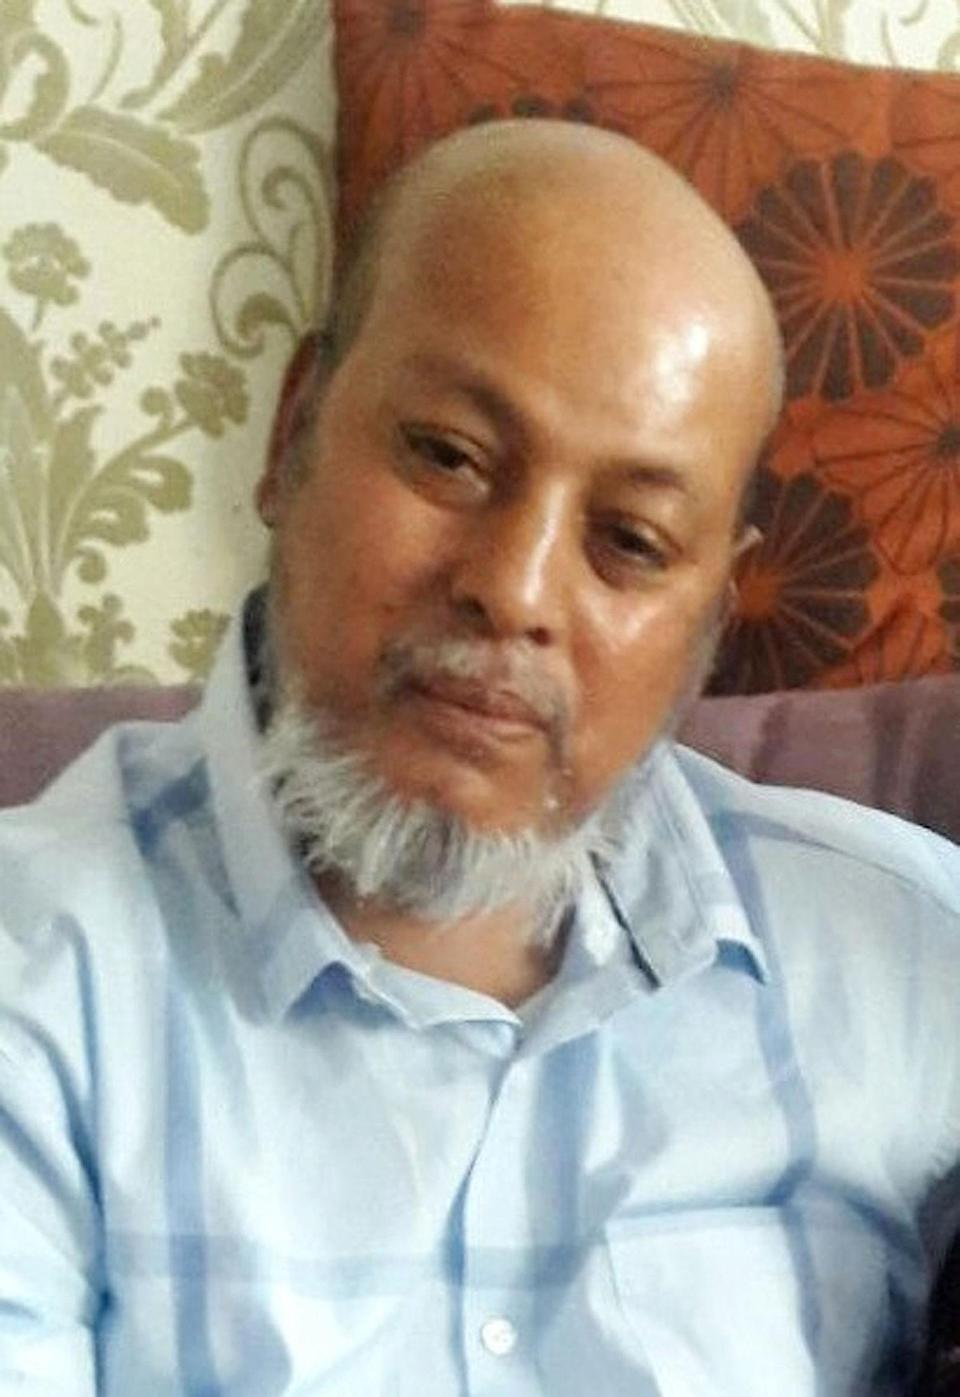 Osborne's victim Makram Ali, 51, who died as a result of multiple injuries